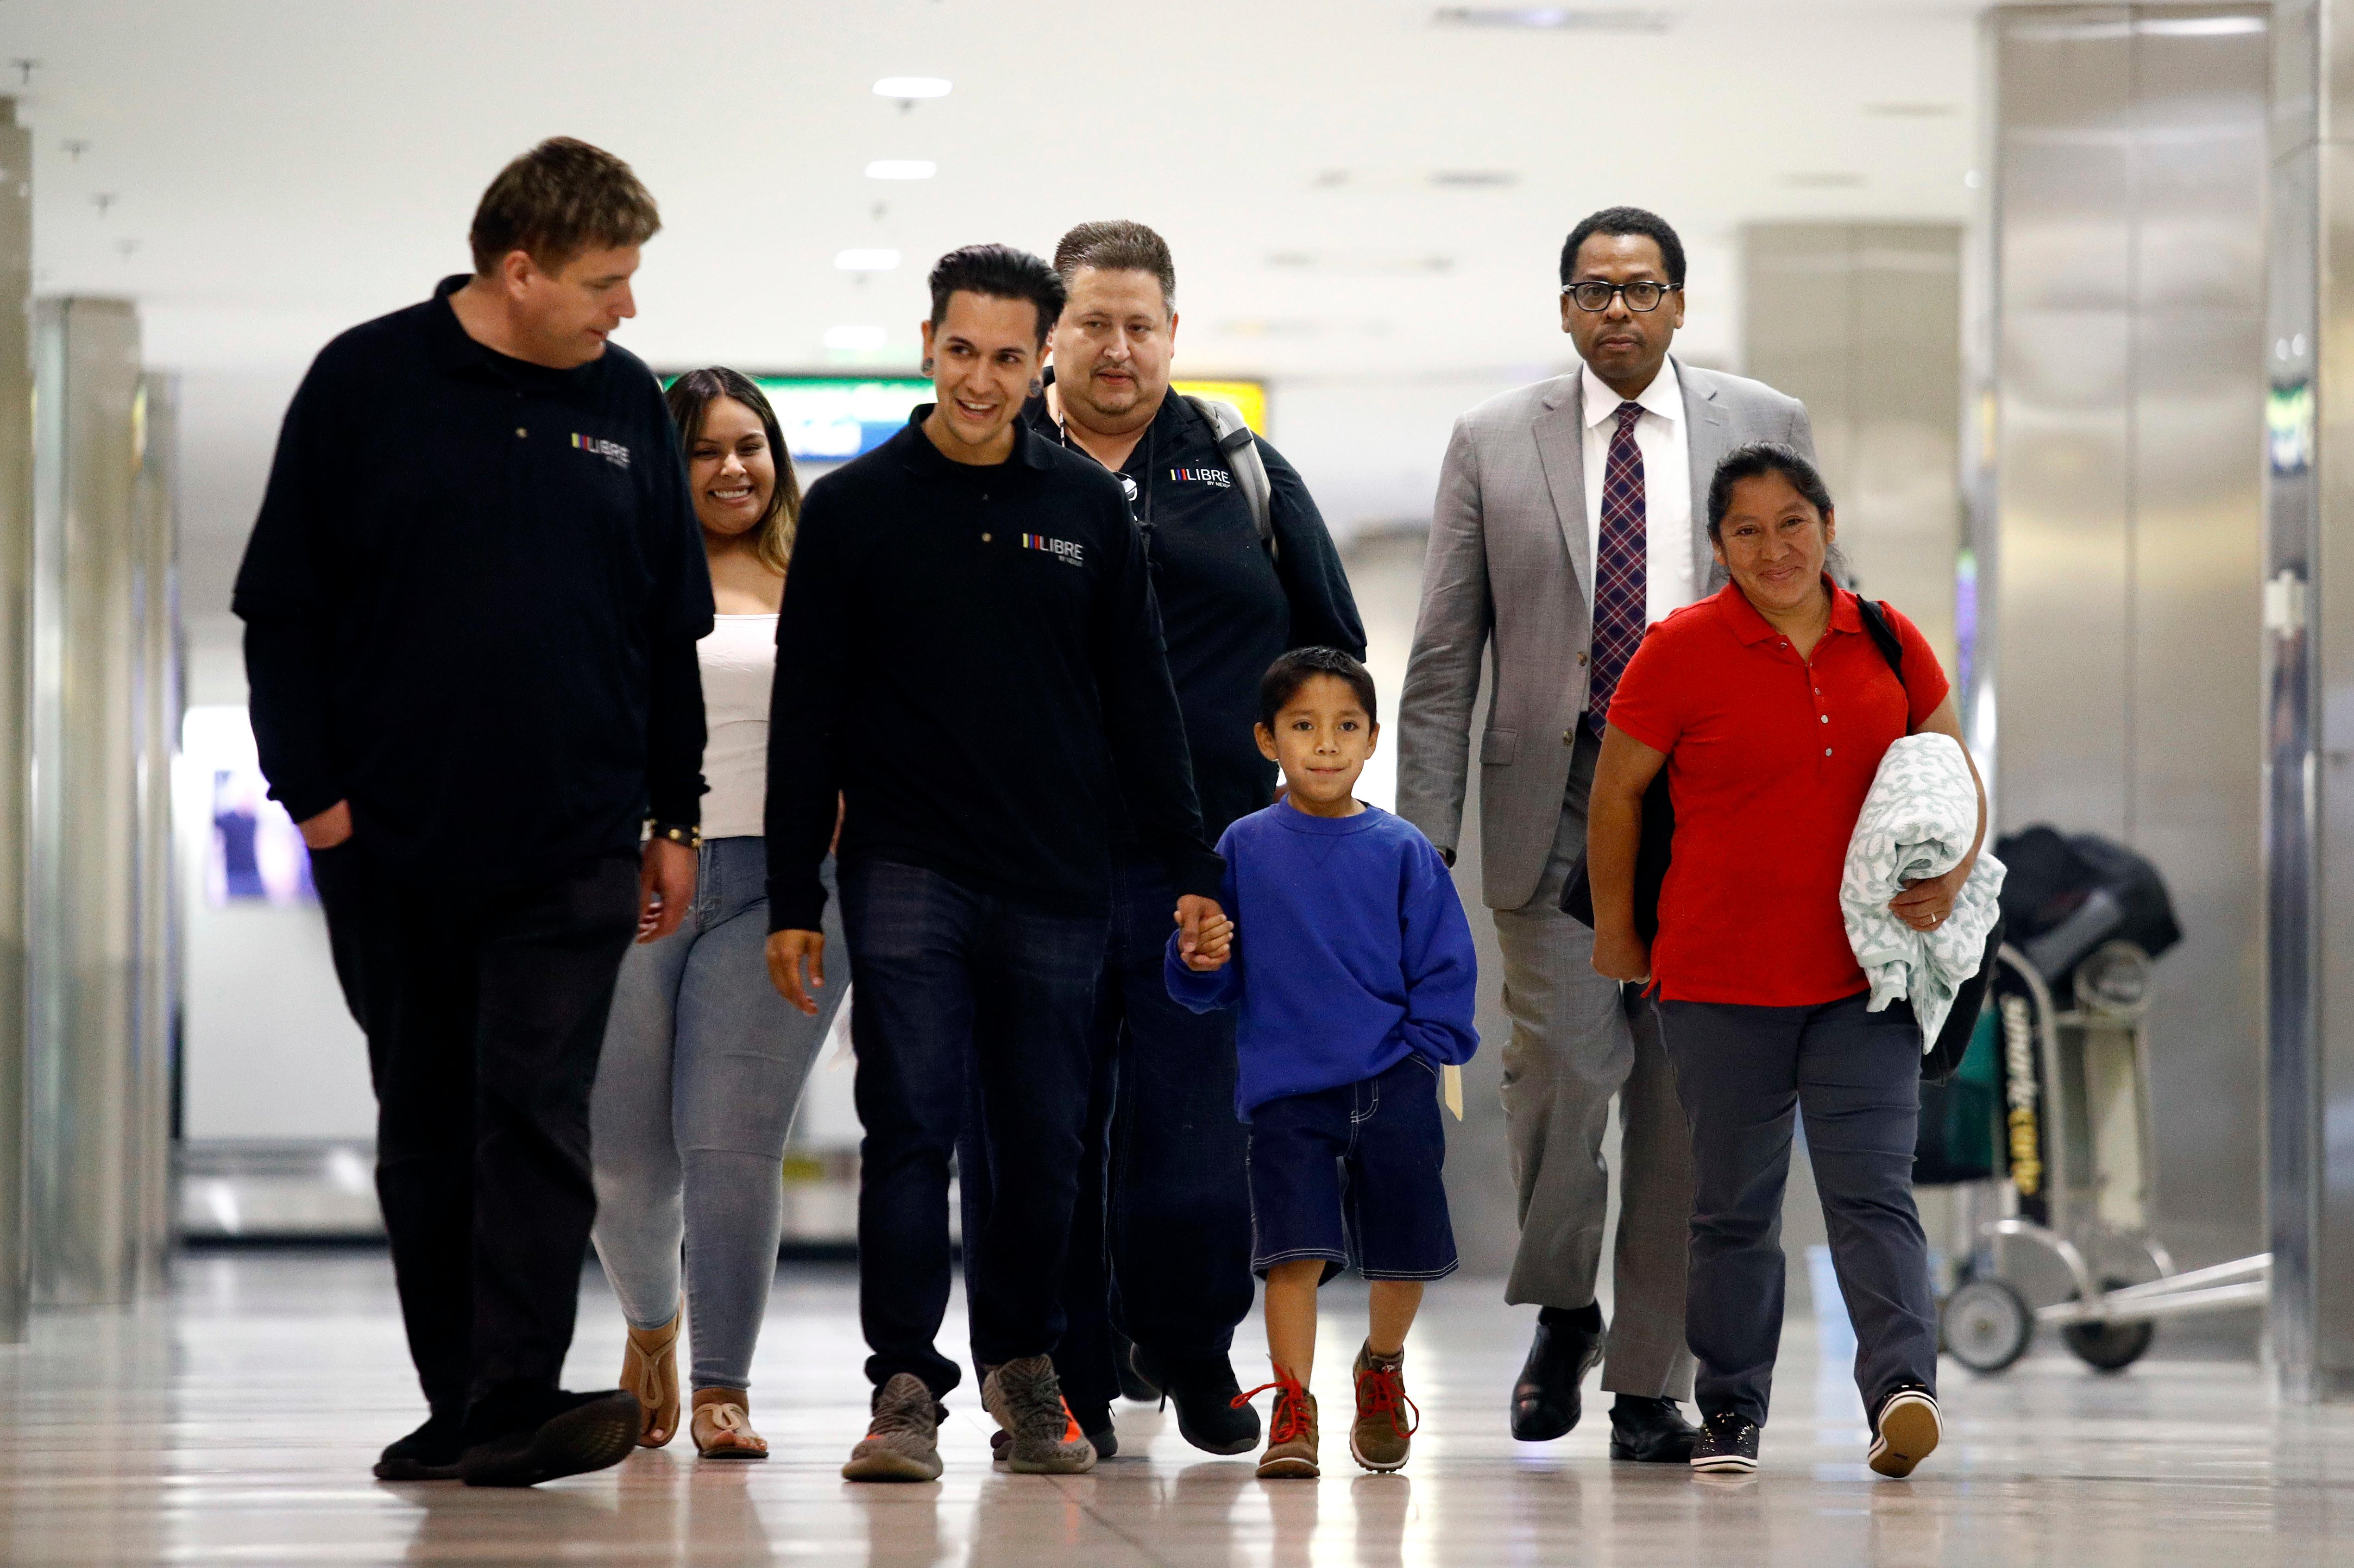 Darwin Micheal Mejia, left, and his mother Beata Mariana de Jesus Mejia-Mejia are escorted to a news conference. (AP Photo/Patrick Semansky)<p></p>